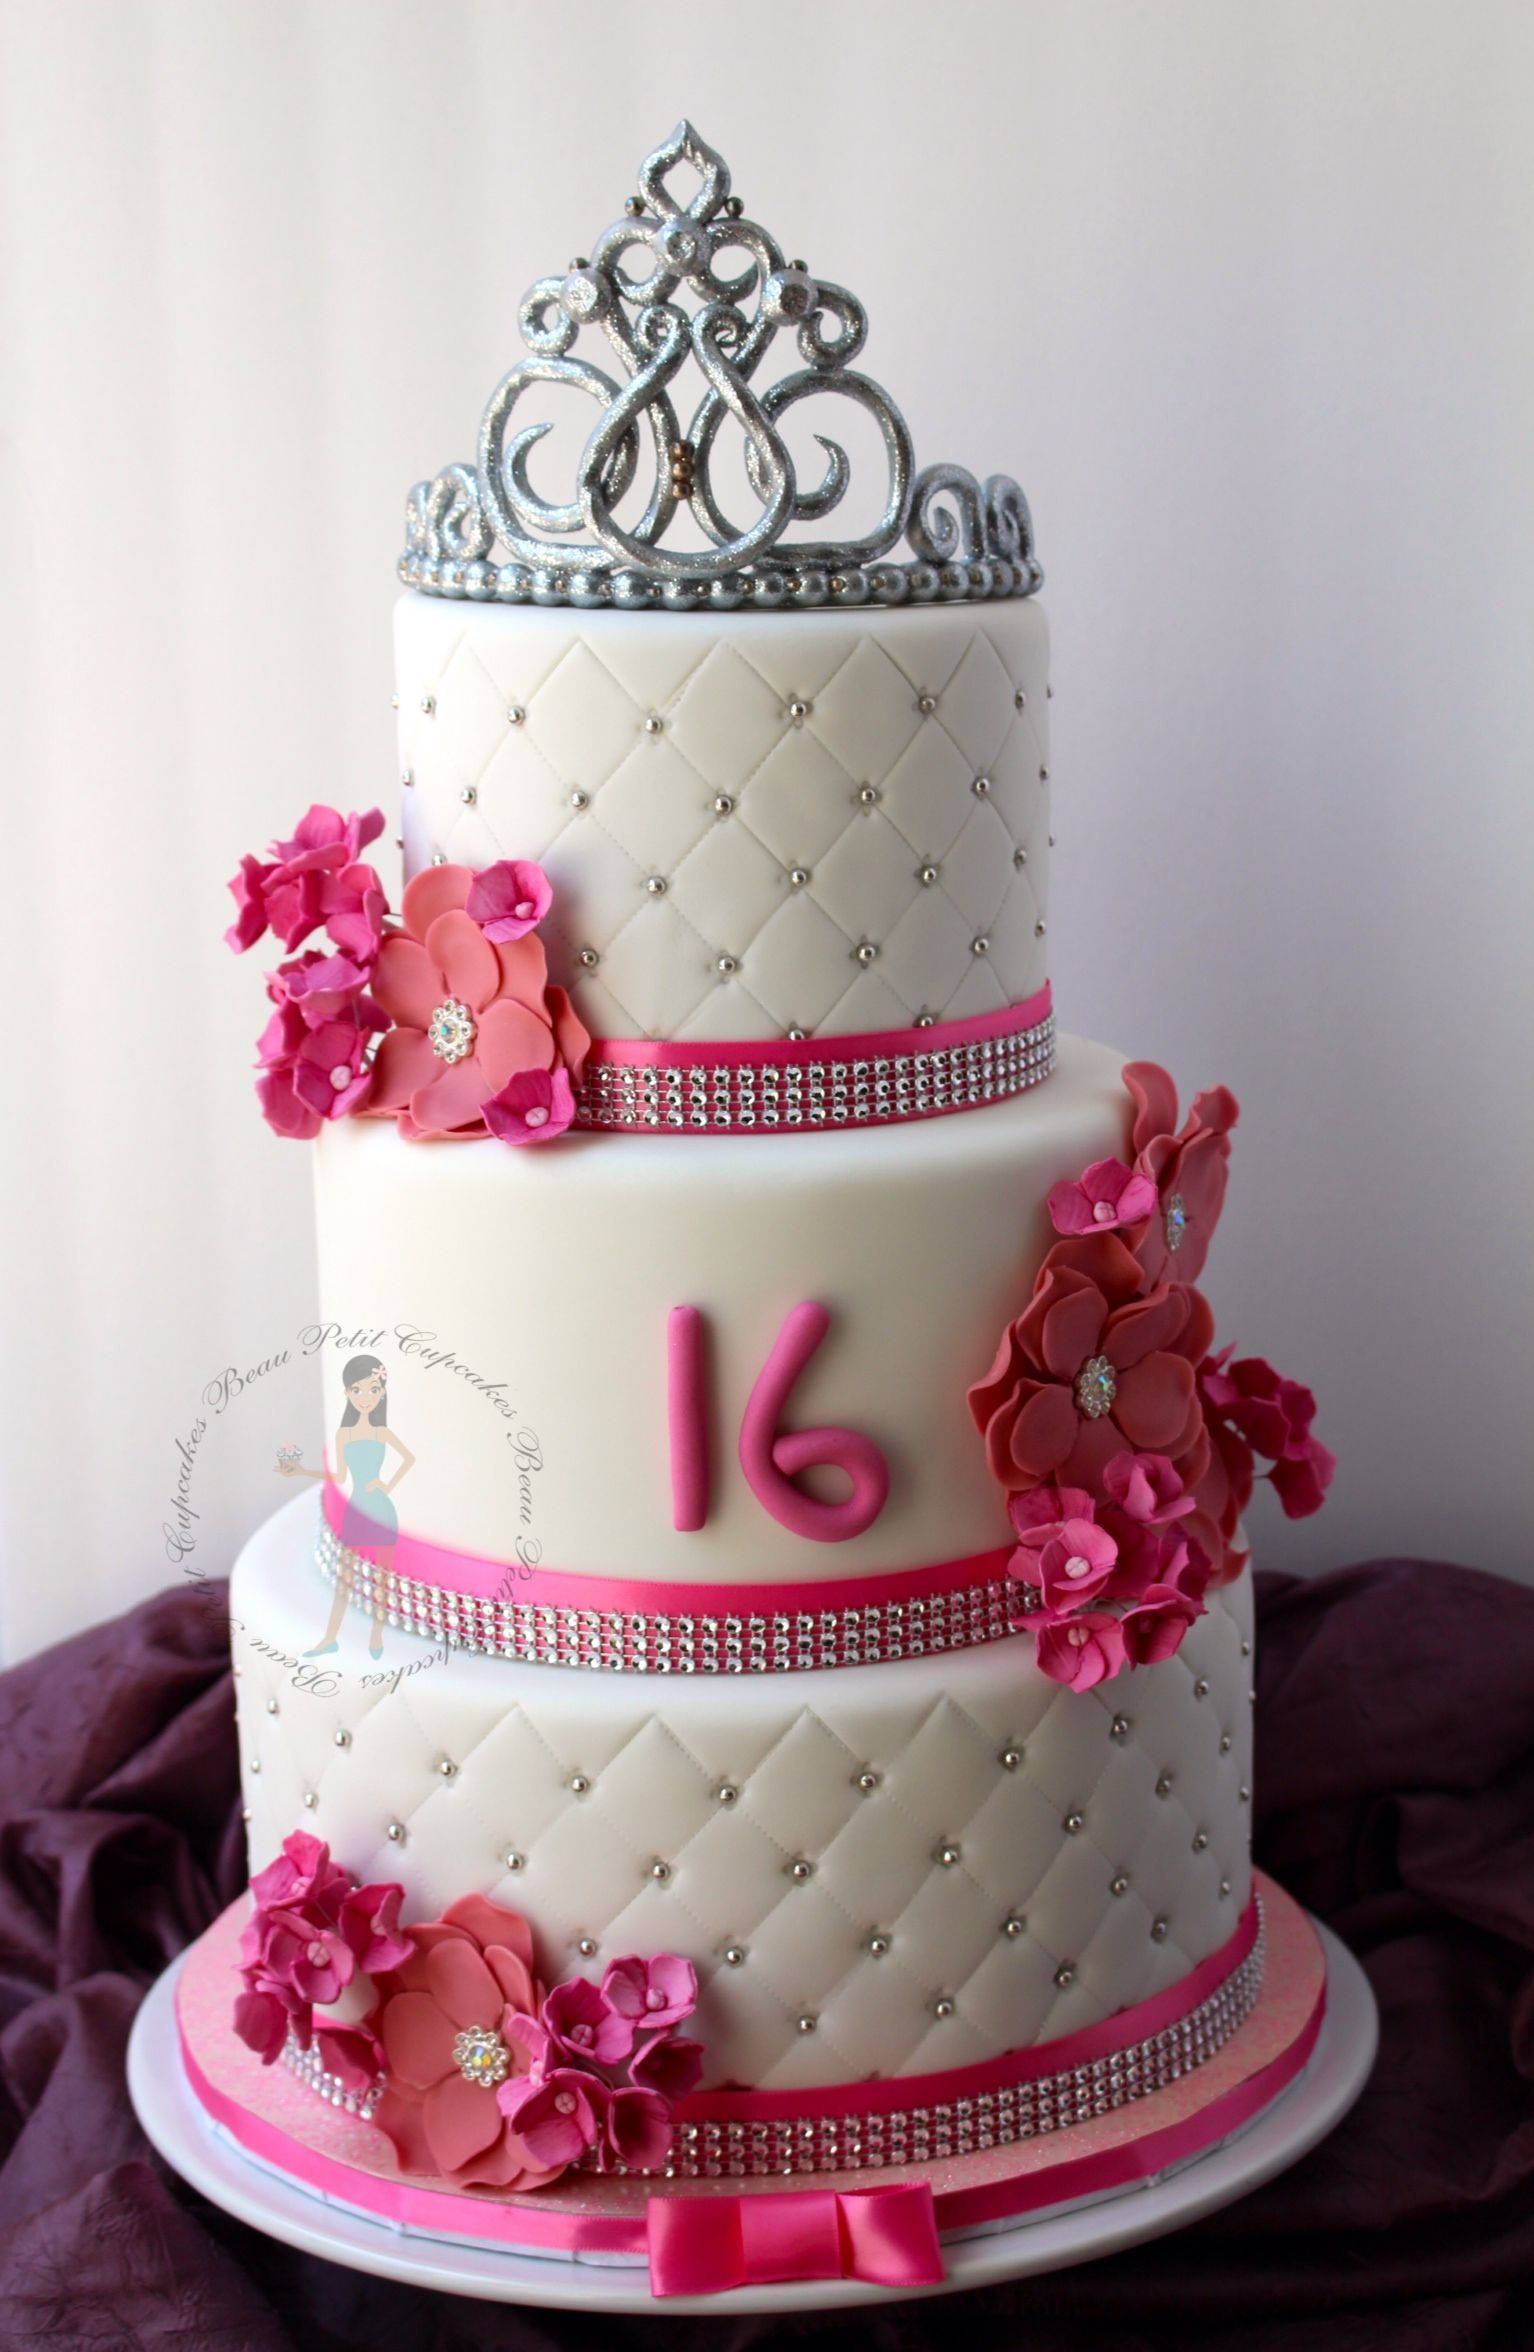 Sweet 16th With Images Sweet 16 Birthday Cake 16th Birthday Cake For Girls Sweet 16 Cakes